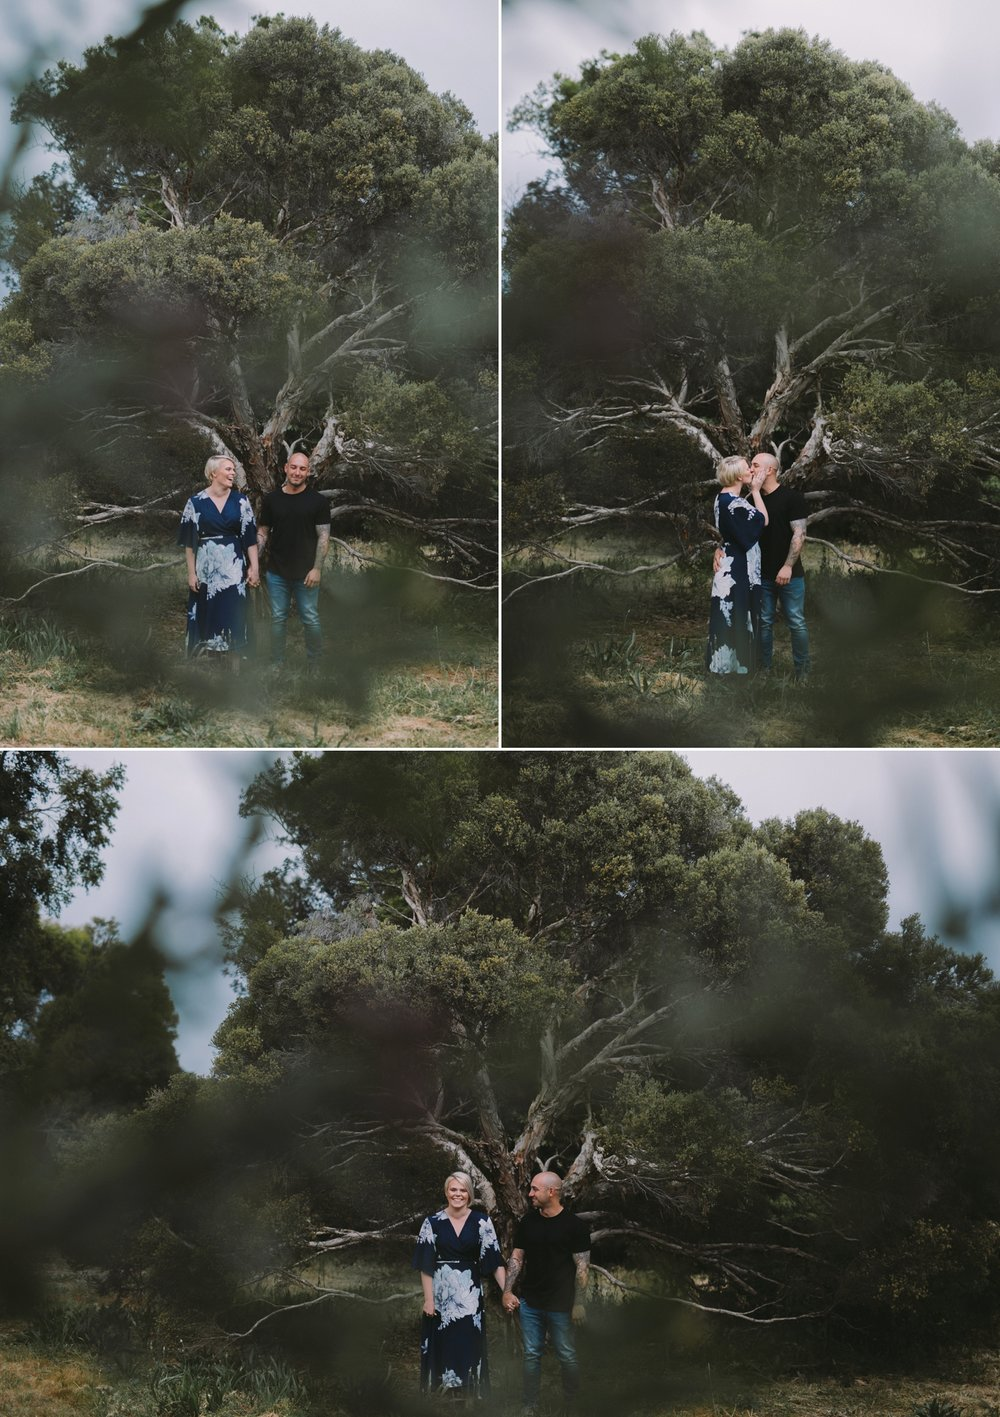 Georgia and Chris - Natural engagement photographer in Adelaide - www.katherineschultzphotography.com 8